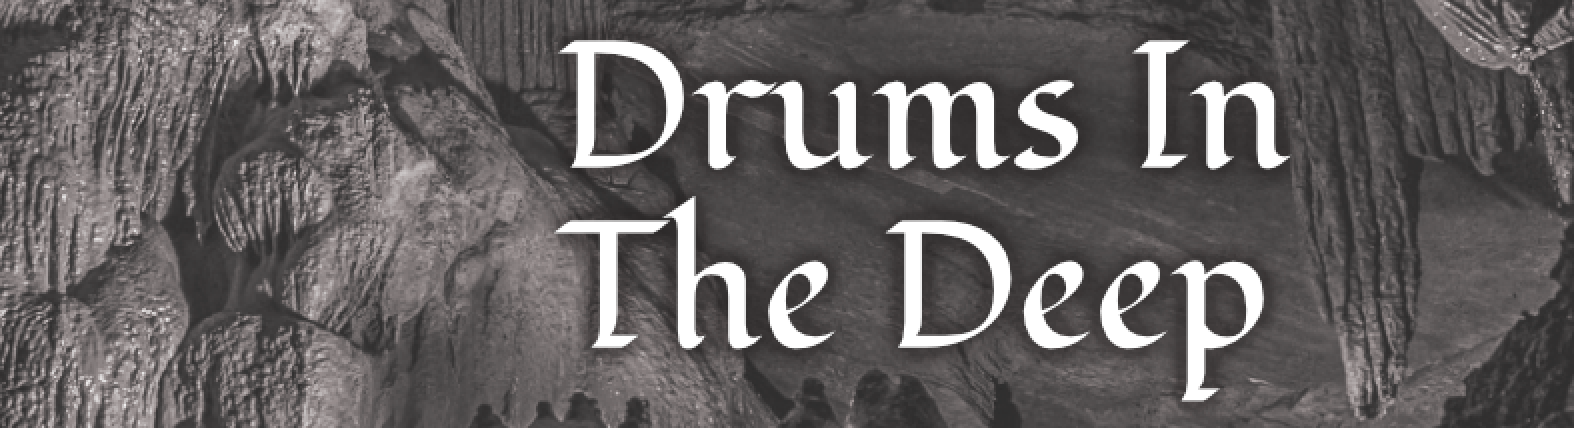 Drums In The Deep